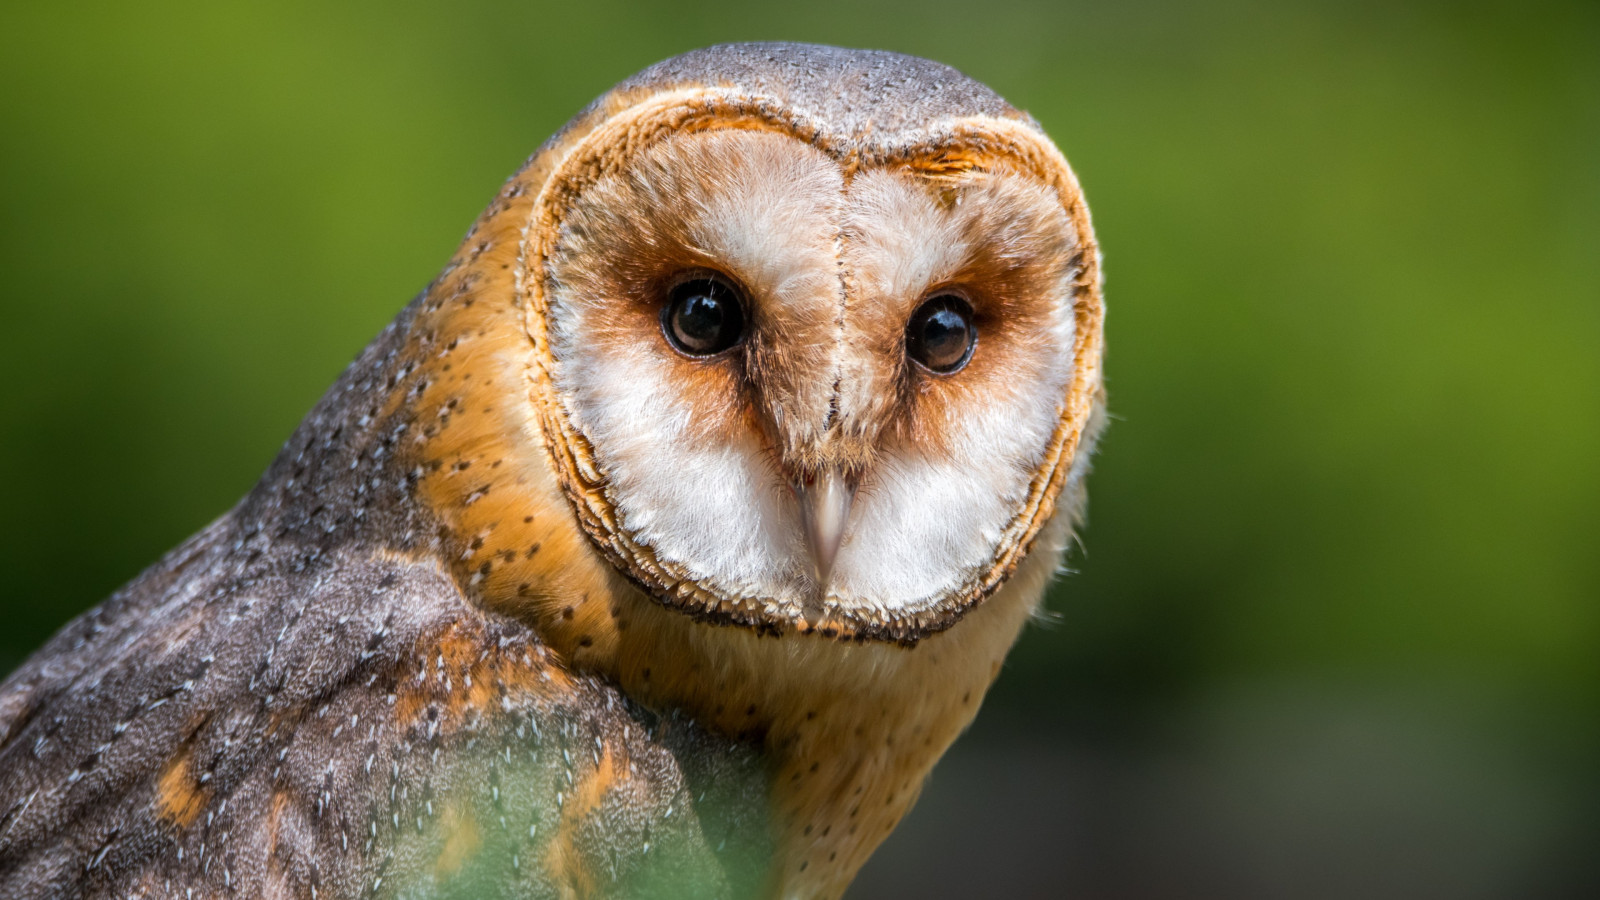 Barn Owl | 1600x900 wallpaper